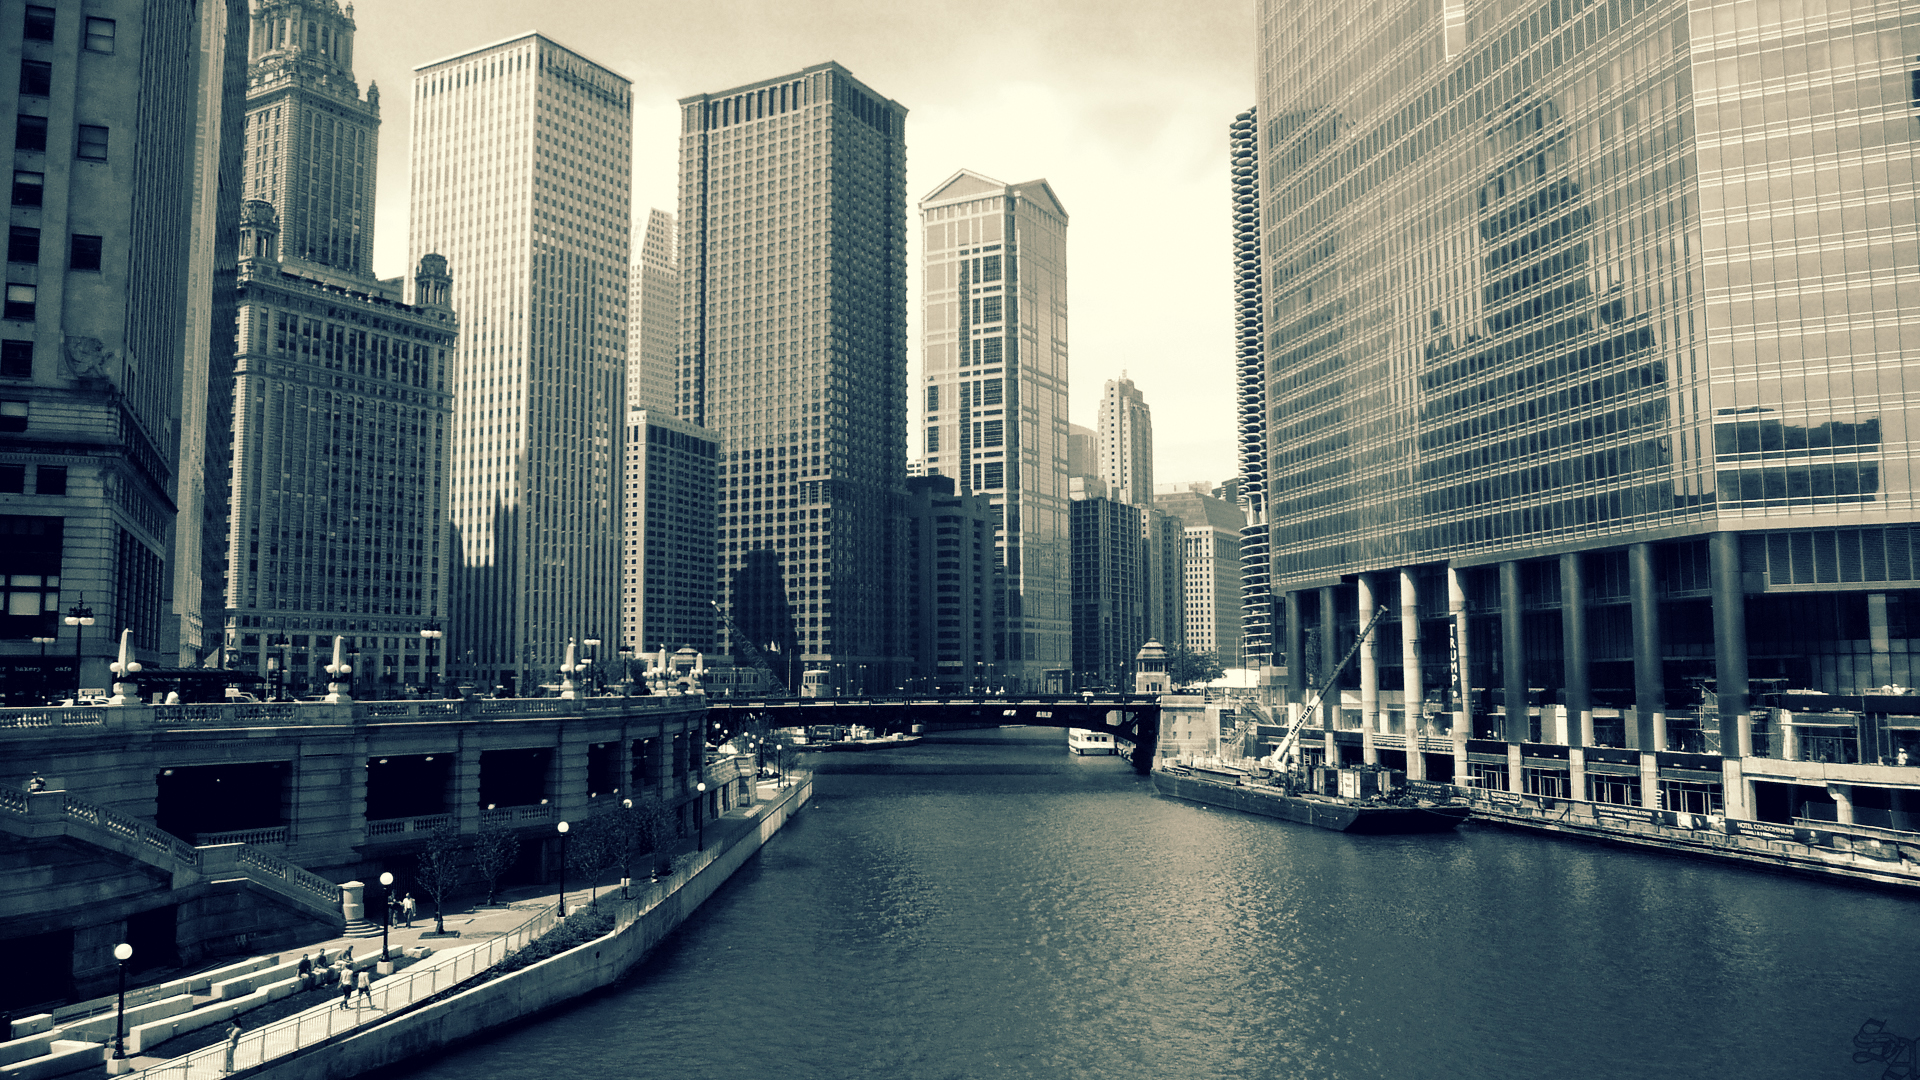 Old_Chicago